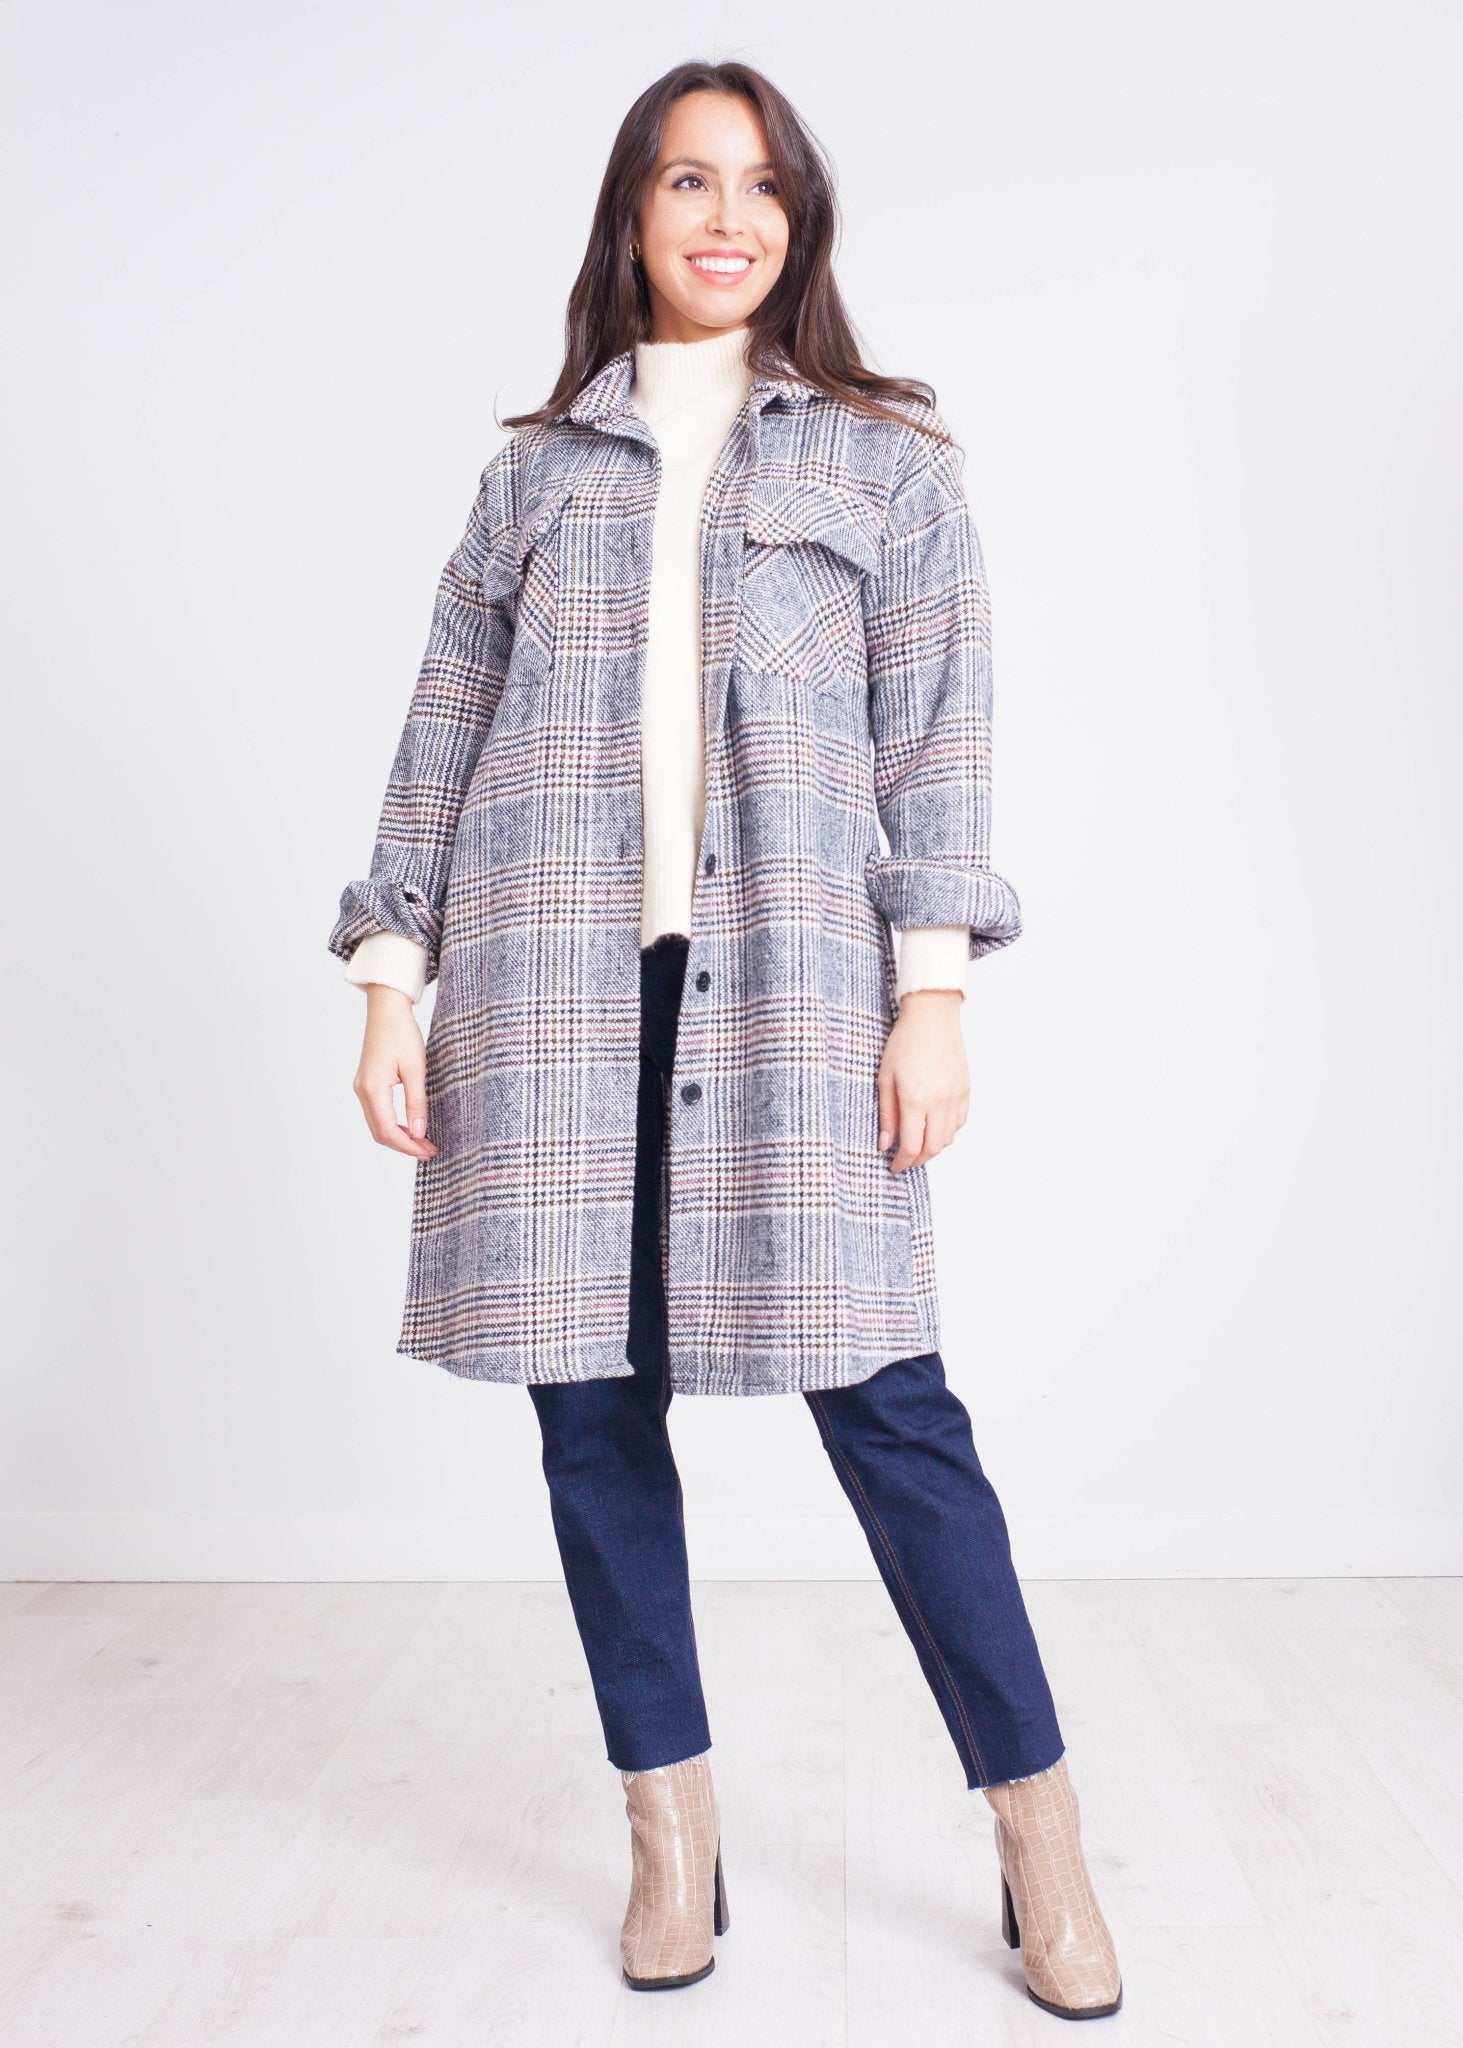 Rose Longline Shacket in Grey Check - The Walk in Wardrobe